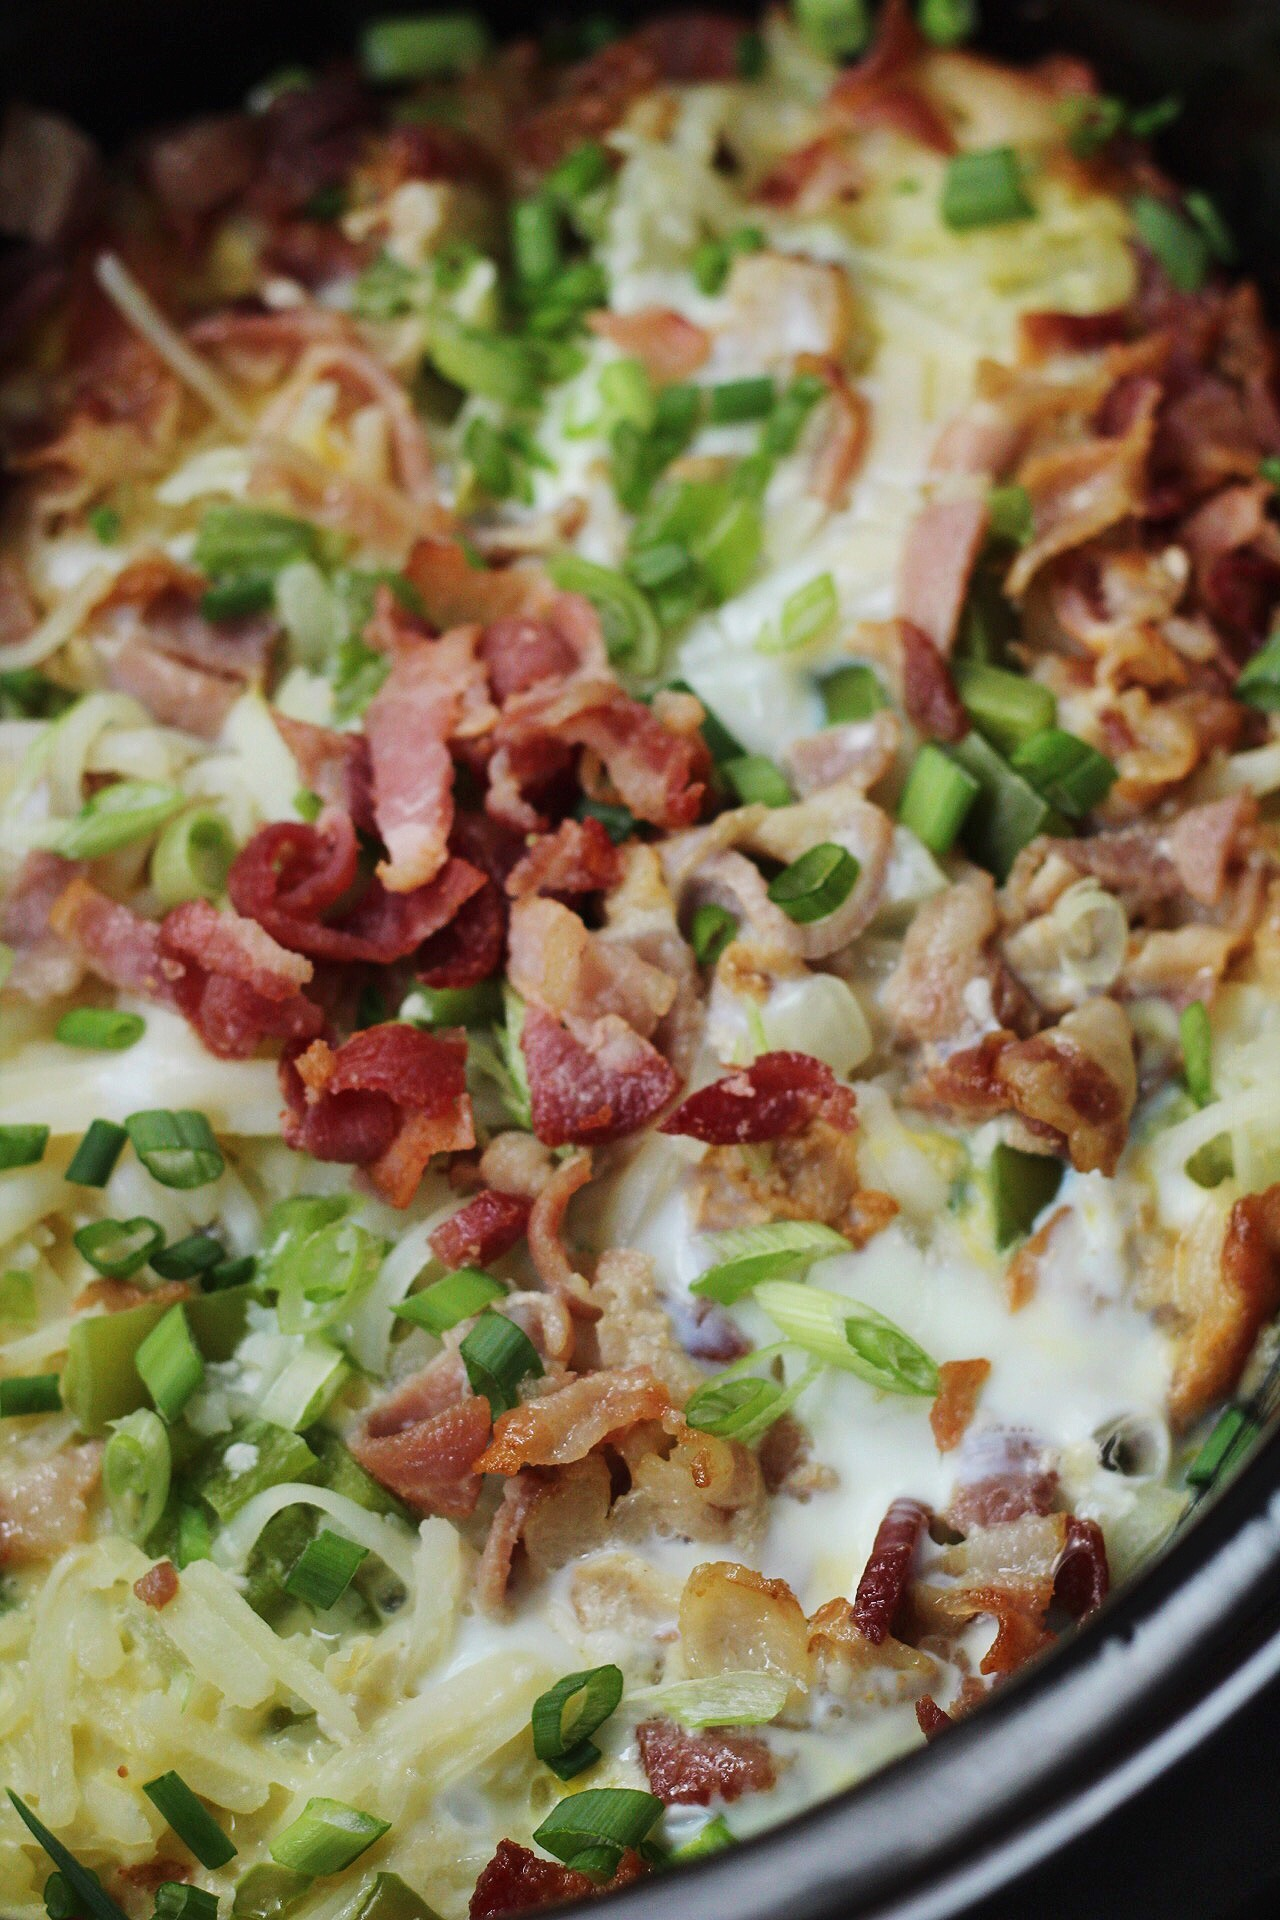 Slow Cooker Bacon, Egg & Hash Brown Bake: Easy Hands-Free Breakfast